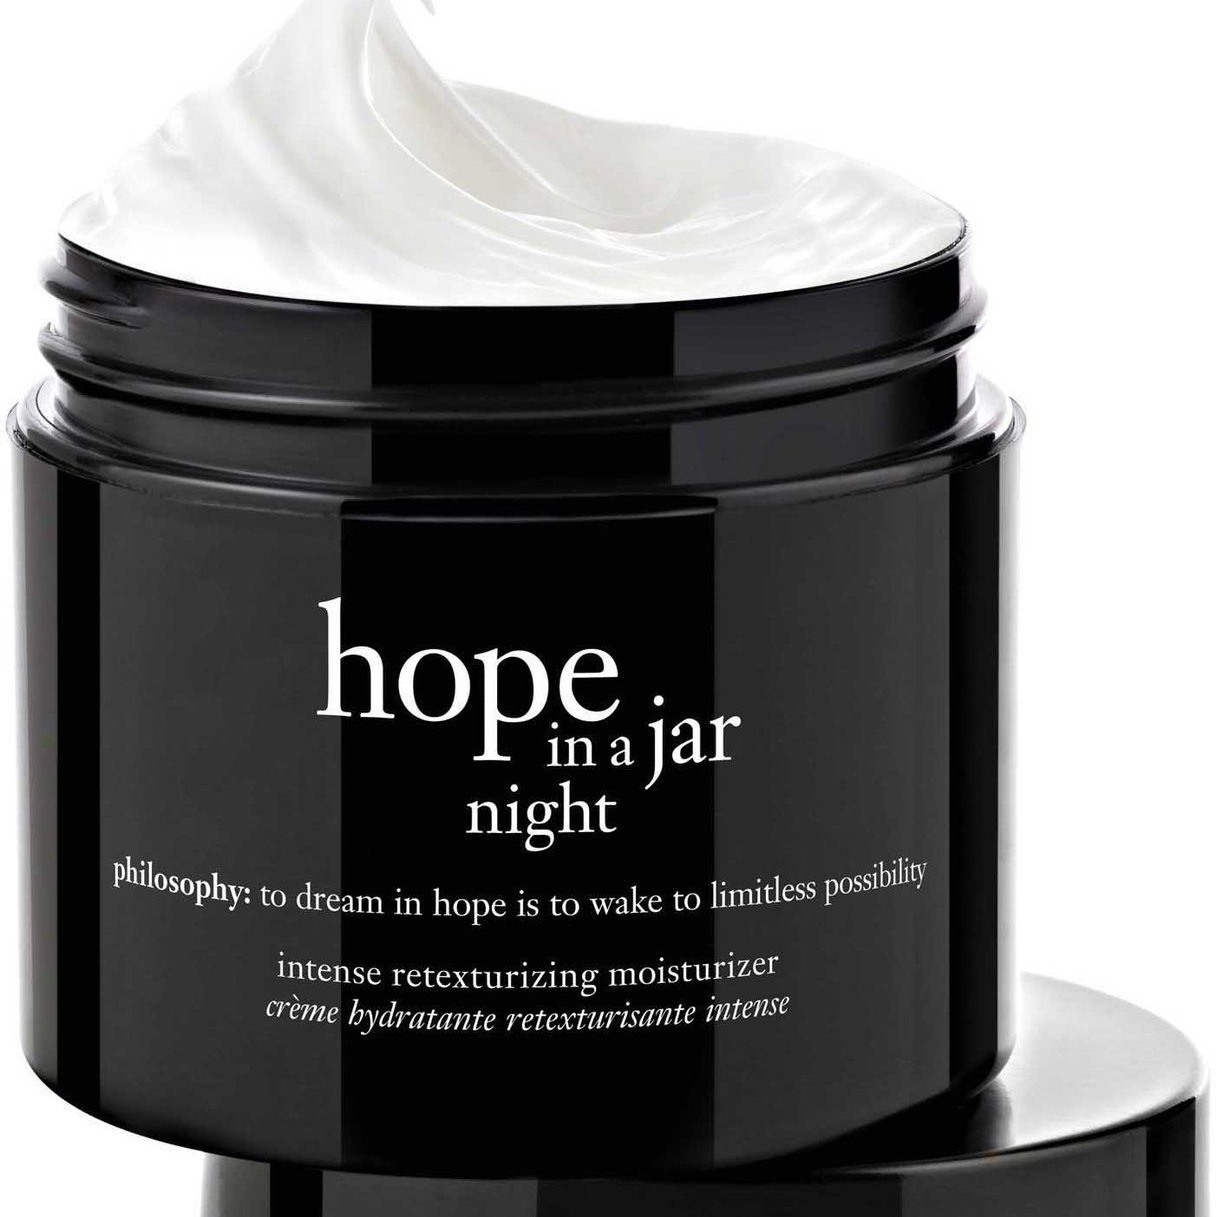 philosophy Hope in a Jar Night (Intense retexturing moisturizer)